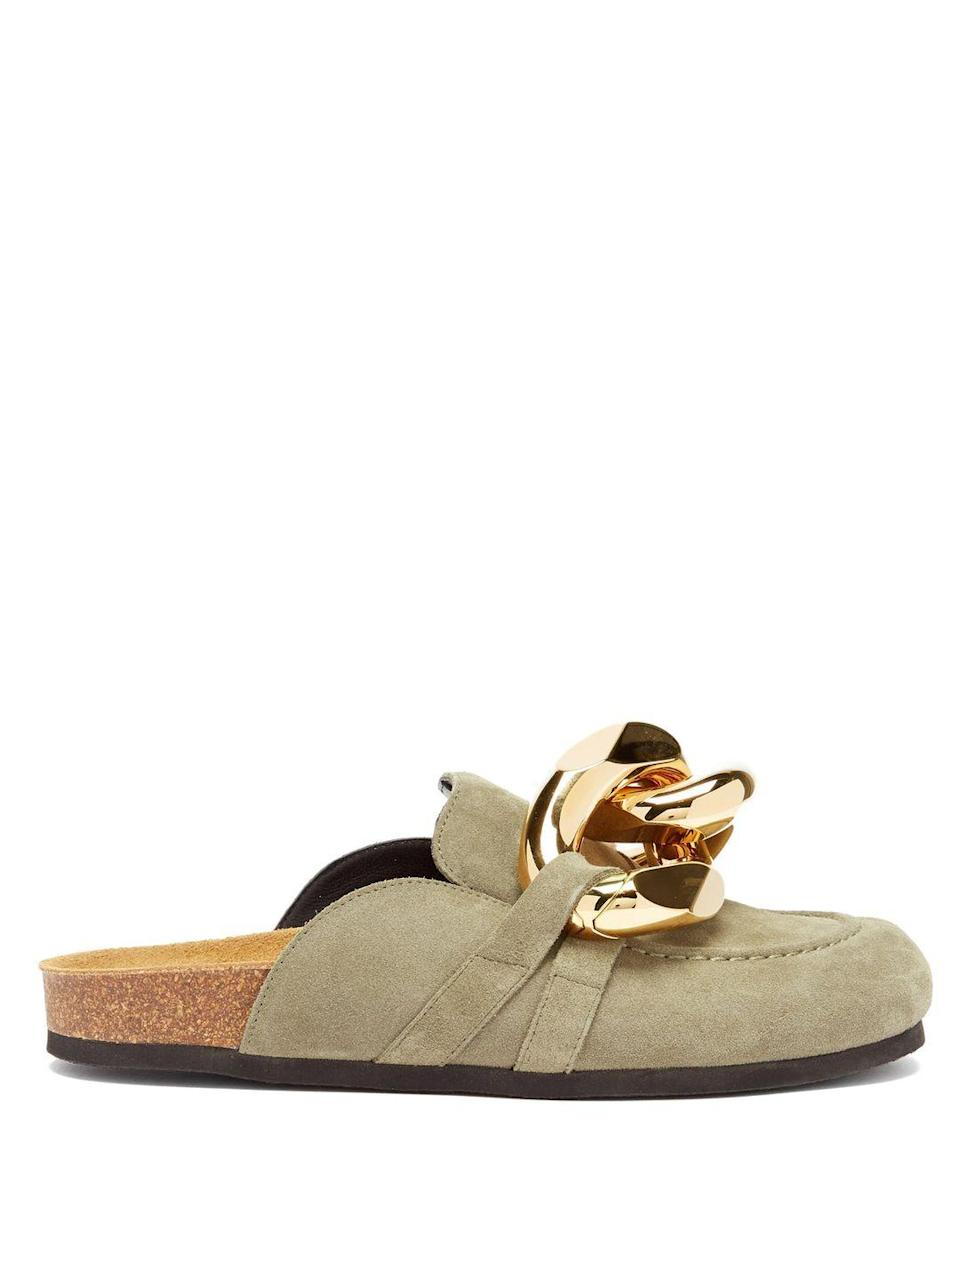 """<p>JW Anderson</p><p>Was £495.00</p><p>Now £346.00</p><p><a class=""""link rapid-noclick-resp"""" href=""""https://go.redirectingat.com?id=127X1599956&url=https%3A%2F%2Fwww.matchesfashion.com%2Fproducts%2FJW-Anderson-Chain-backless-suede-loafers-1406665&sref=https%3A%2F%2Fwww.elle.com%2Fuk%2Ffashion%2Fwhat-to-wear%2Fg36616066%2Fmatches-fashion-sale%2F"""" rel=""""nofollow noopener"""" target=""""_blank"""" data-ylk=""""slk:SHOP NOW"""">SHOP NOW</a></p><p>Just because lockdown has ended, it doesn't meed you need to give up fashionable comfort. </p>"""